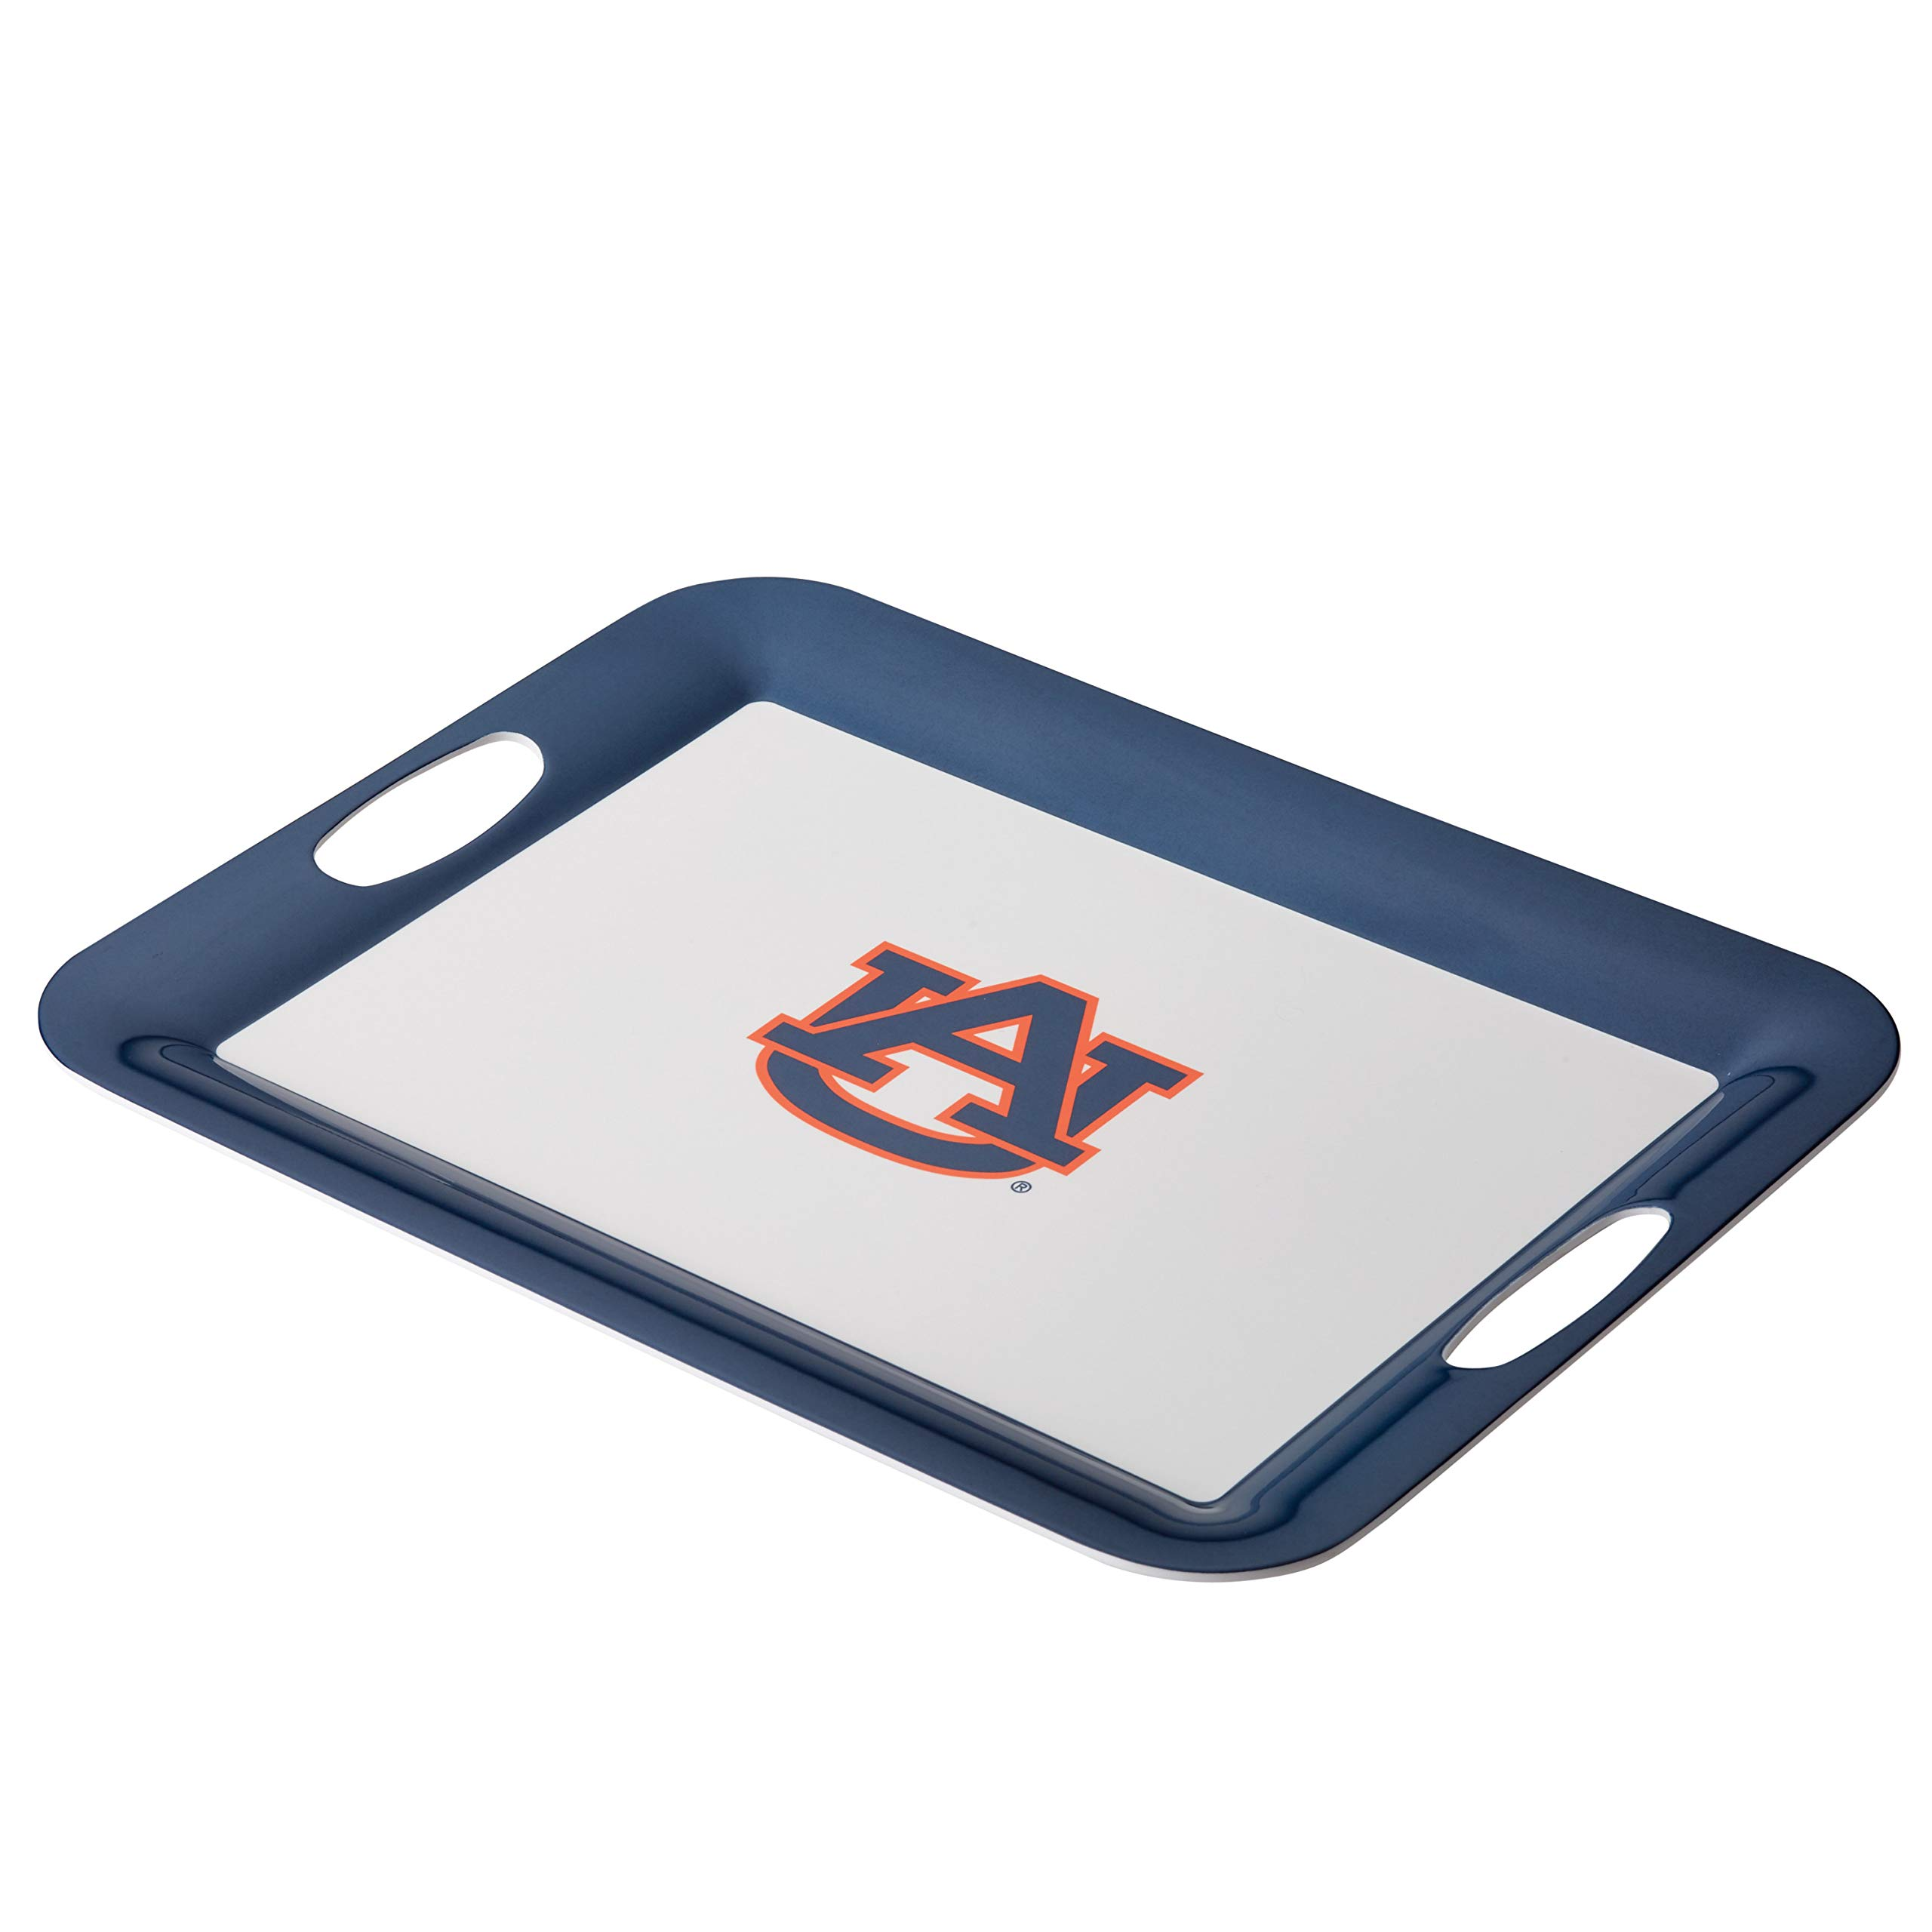 College Kitchen Collection 47966 Auburn Tigers Serving Tray / Party Platter / Food Appetizer Serveware - 12.5 Inch, White